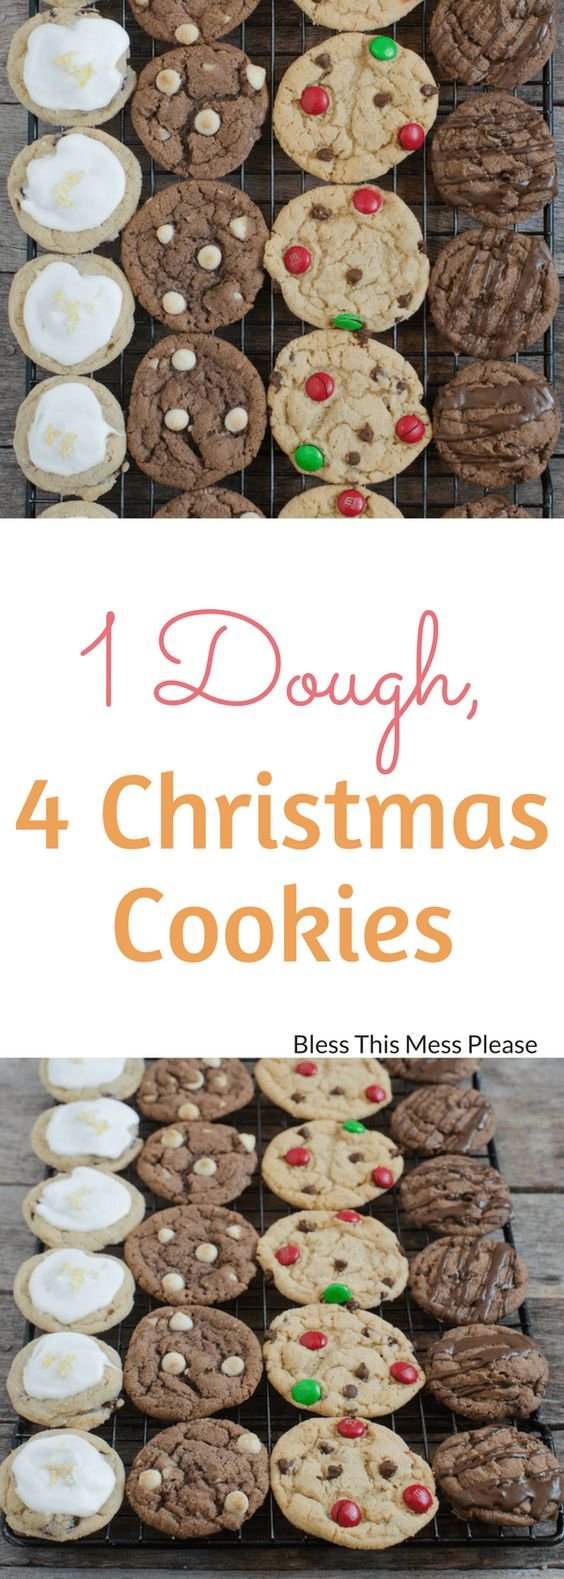 1 Dough, 4 Christmas Cookies - Save yourself some kitchen time this holiday season – this one dough recipe makes four different kinds of Christmas cookies! #christmas #christmascookies